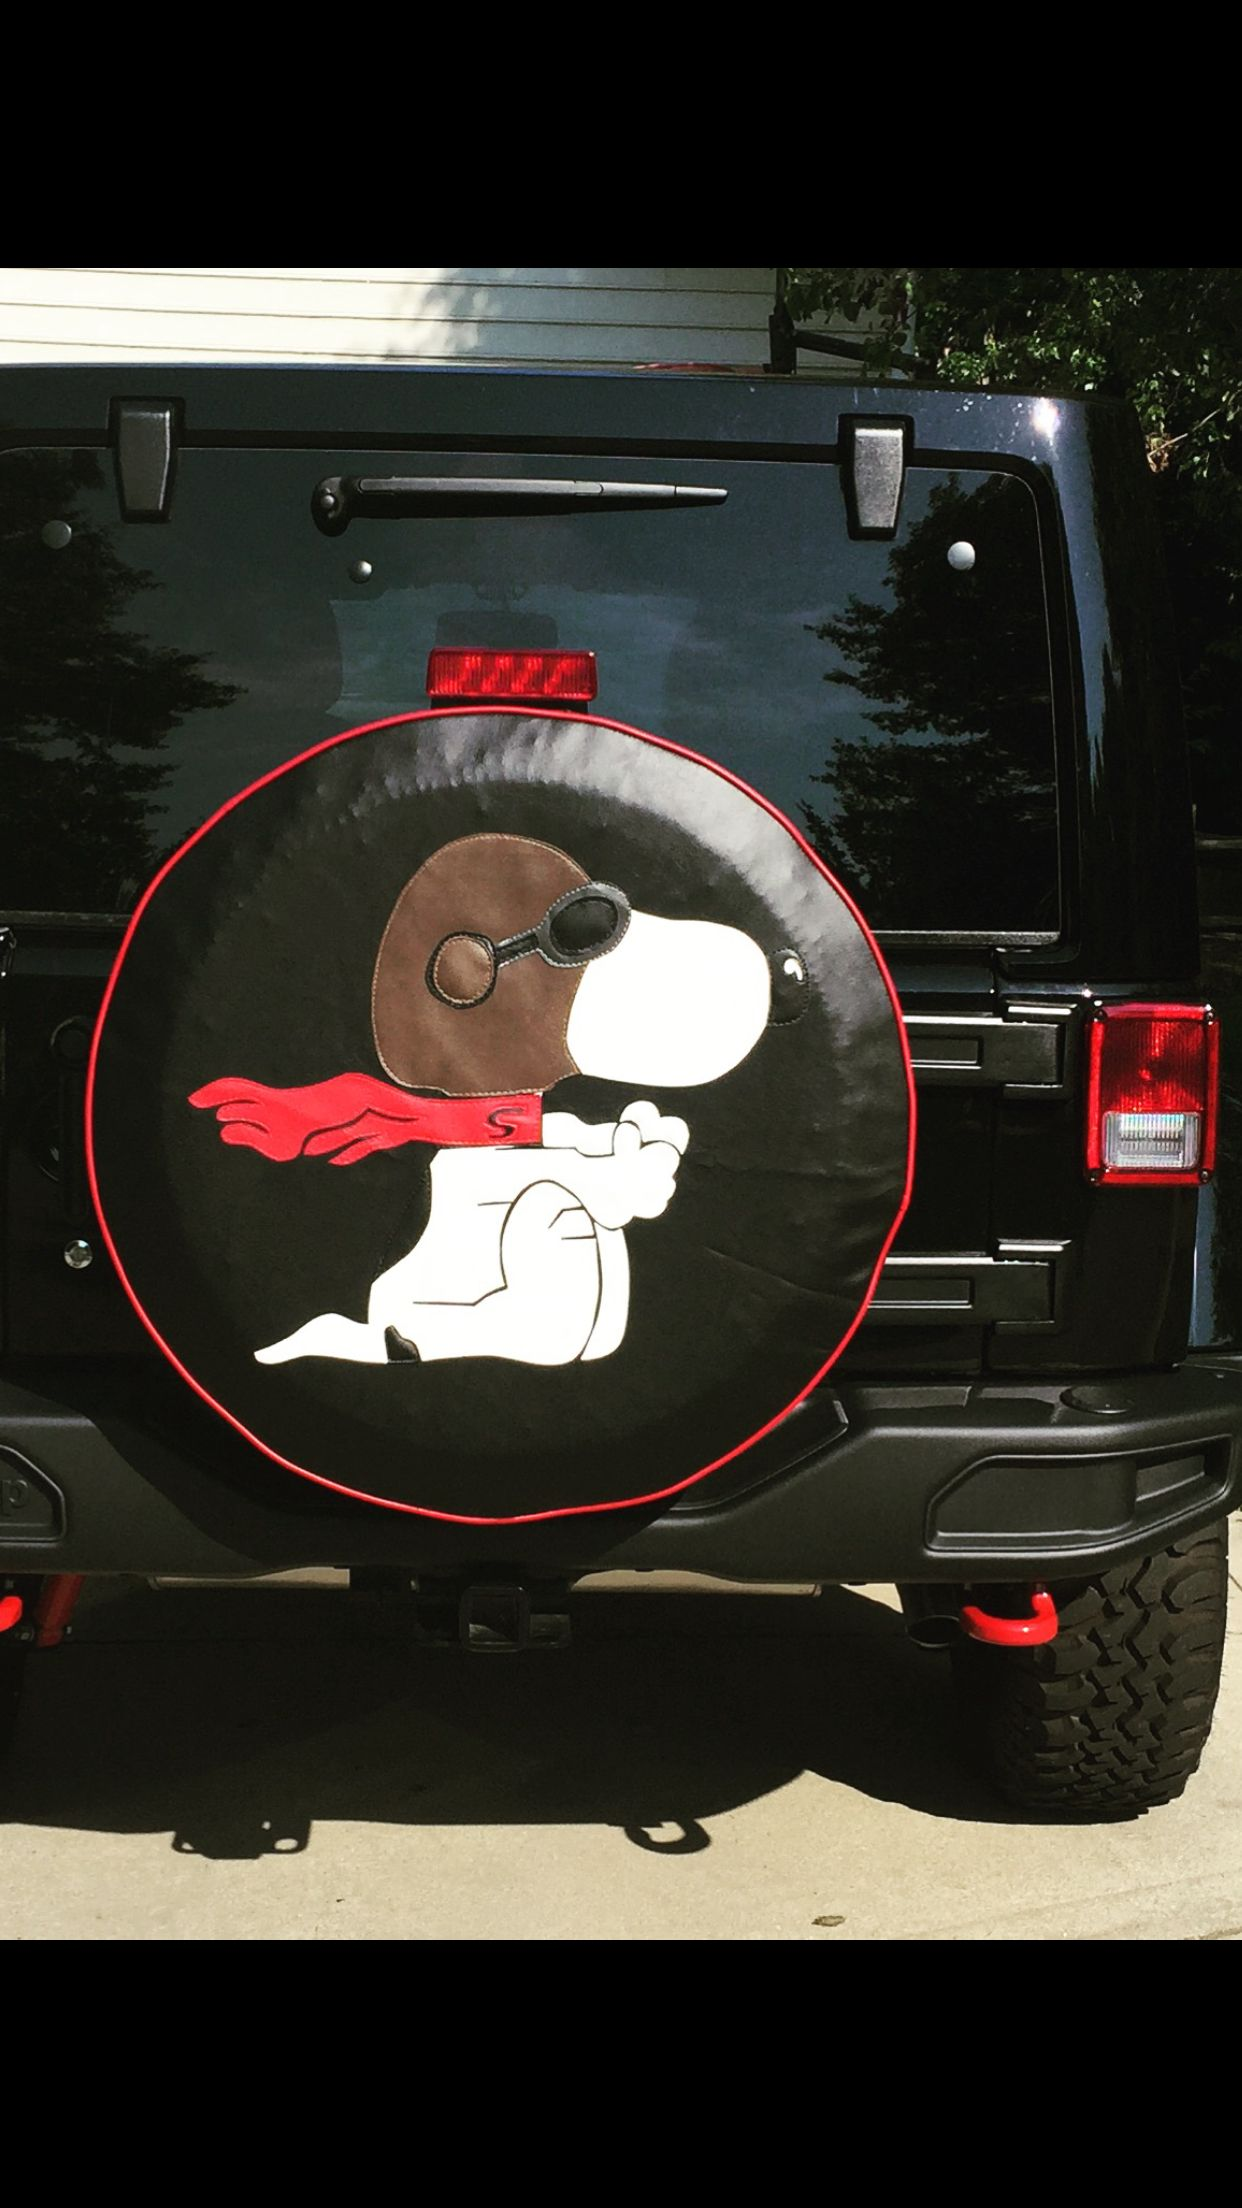 Jeep Rubicon Snoopy Jeep Tire Cover Jeep Covers Jeep Wrangler Tire Covers